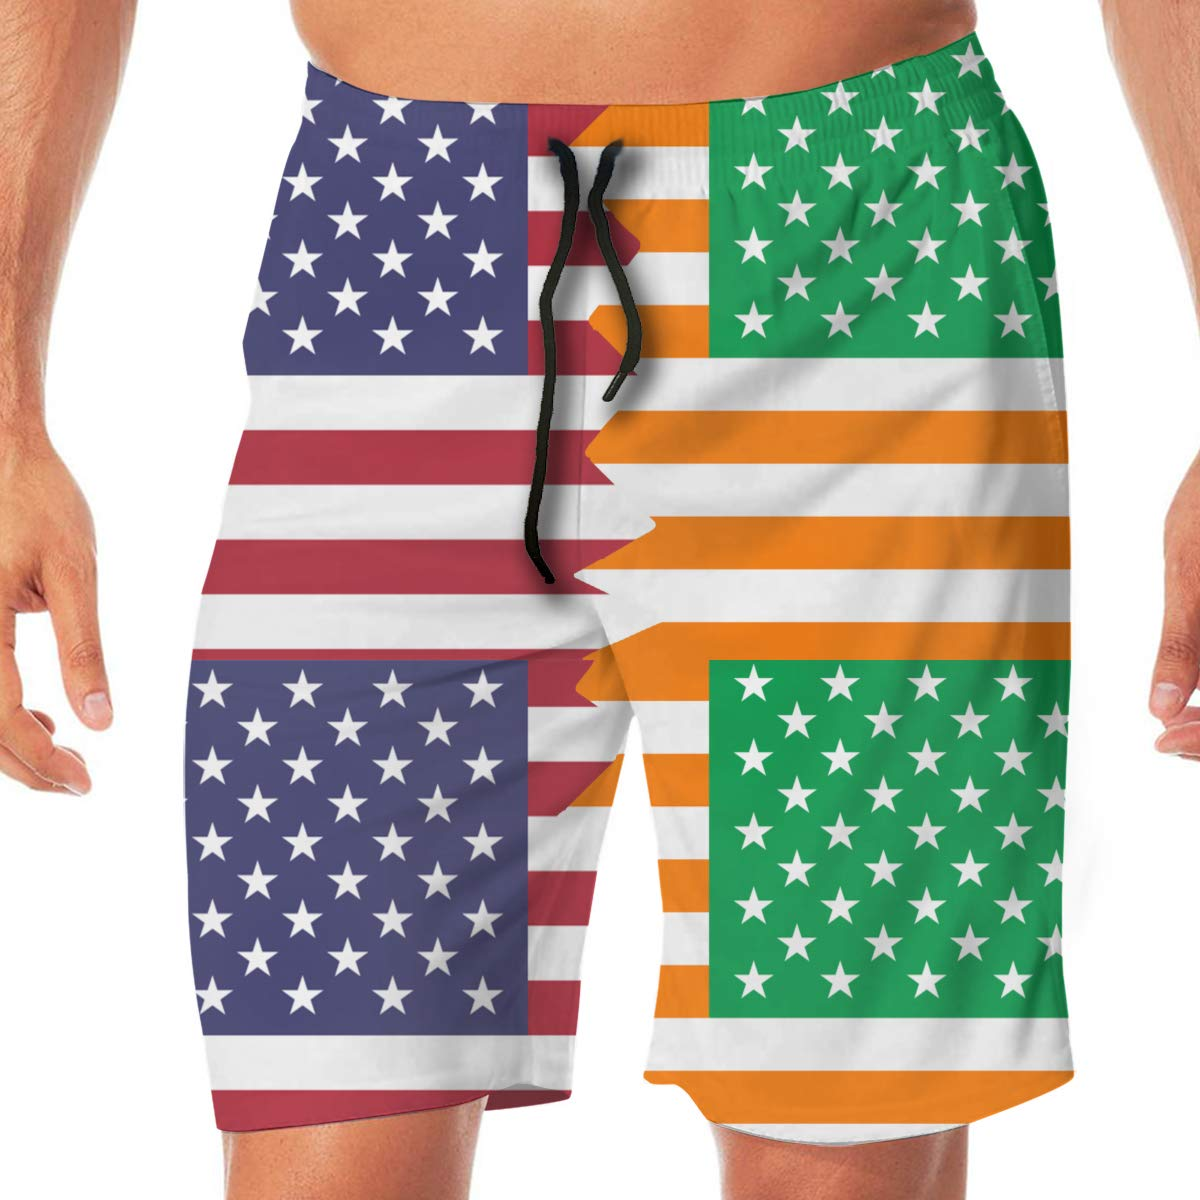 Men Bathing Suit American Irish United States Casual Sport Beach Board Short with Pocket